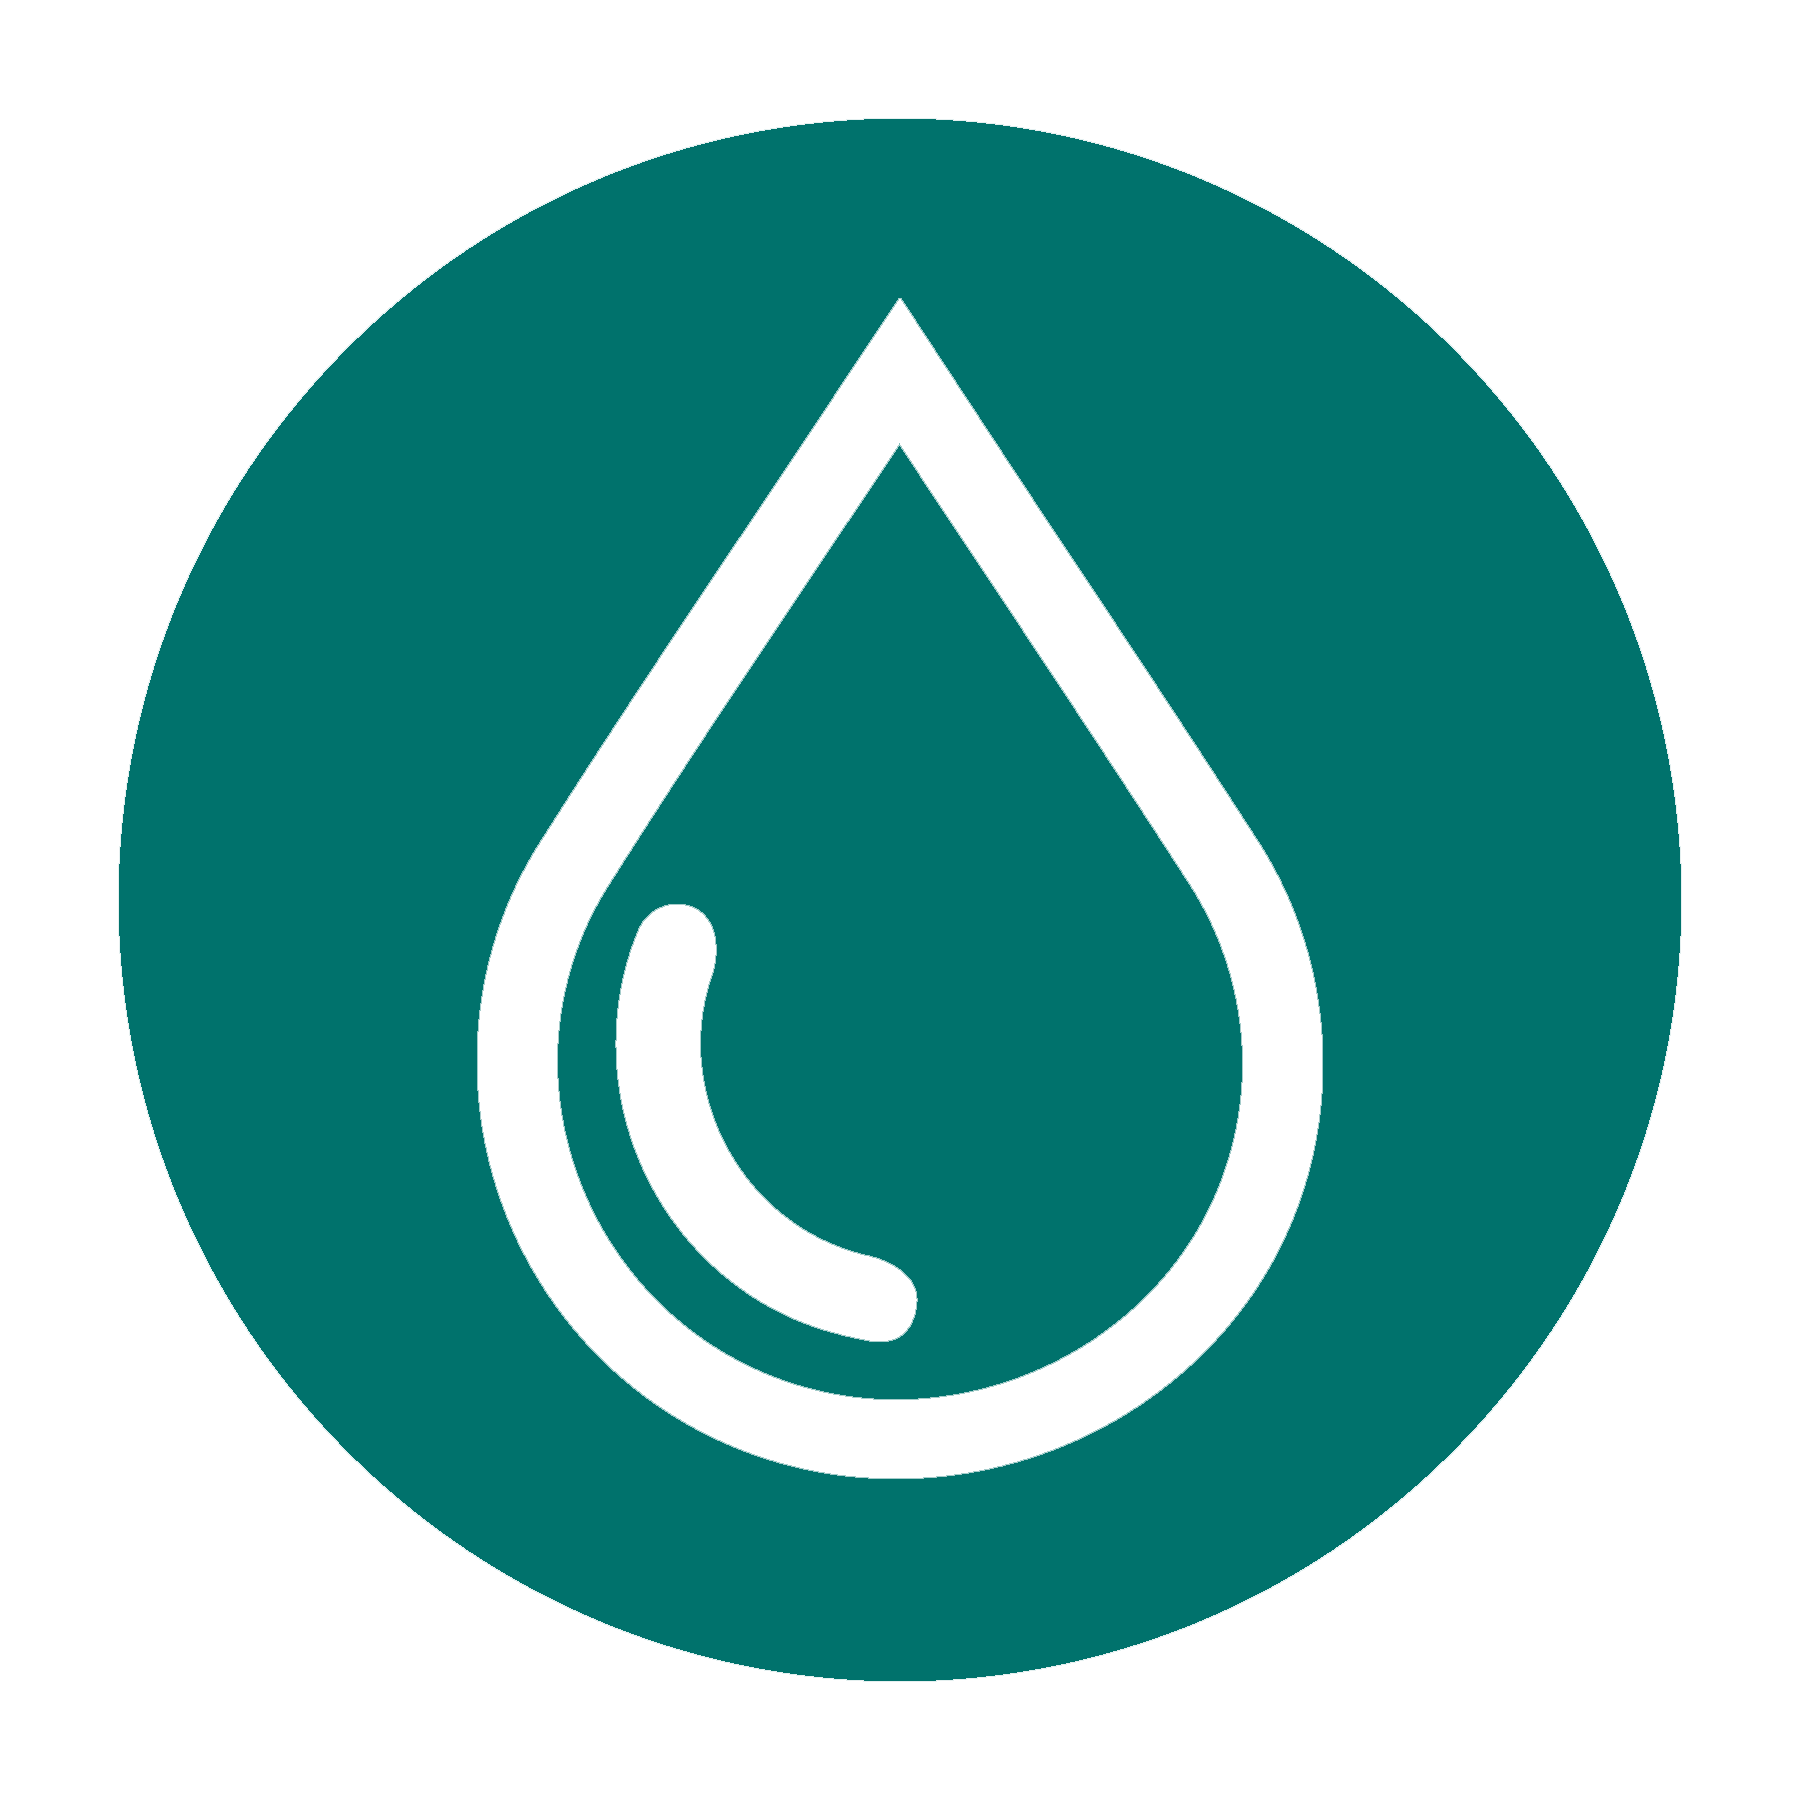 Water badge